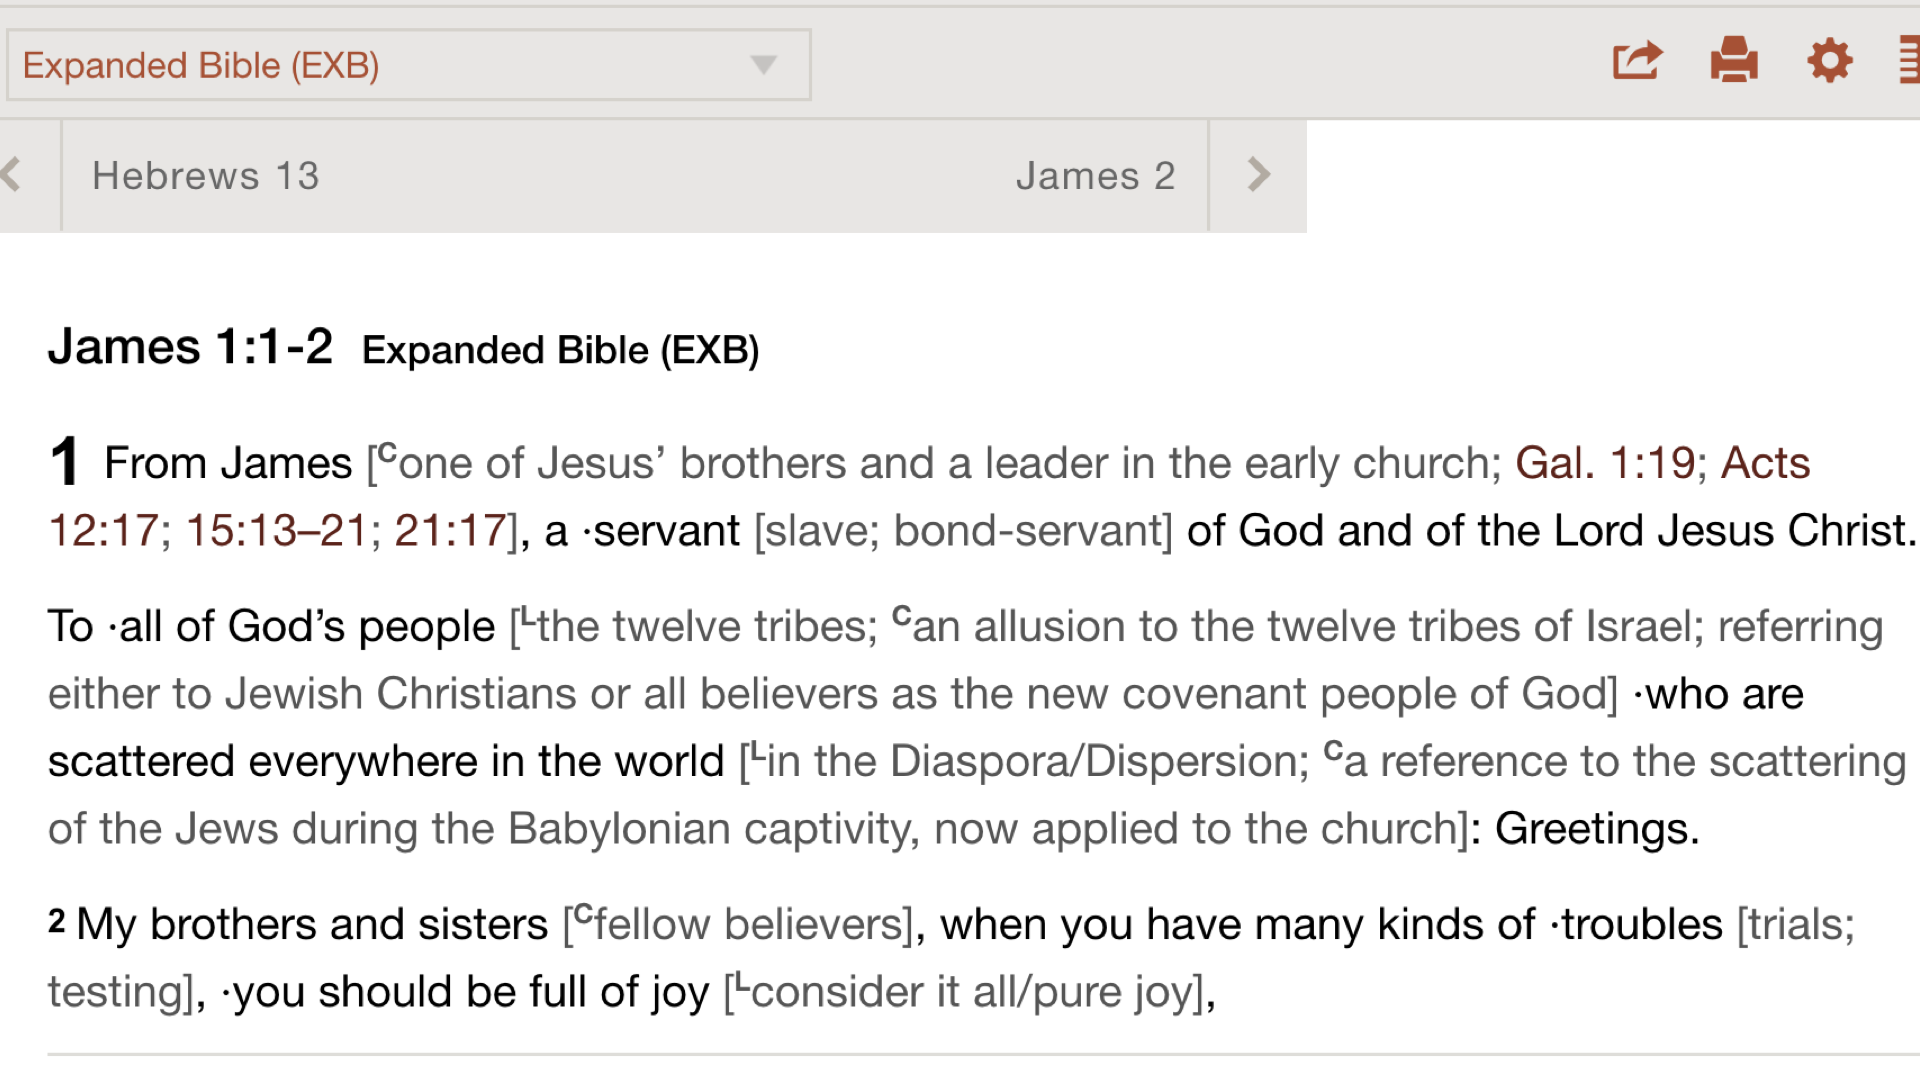 Expanded Bible - Online at Bible Gateway